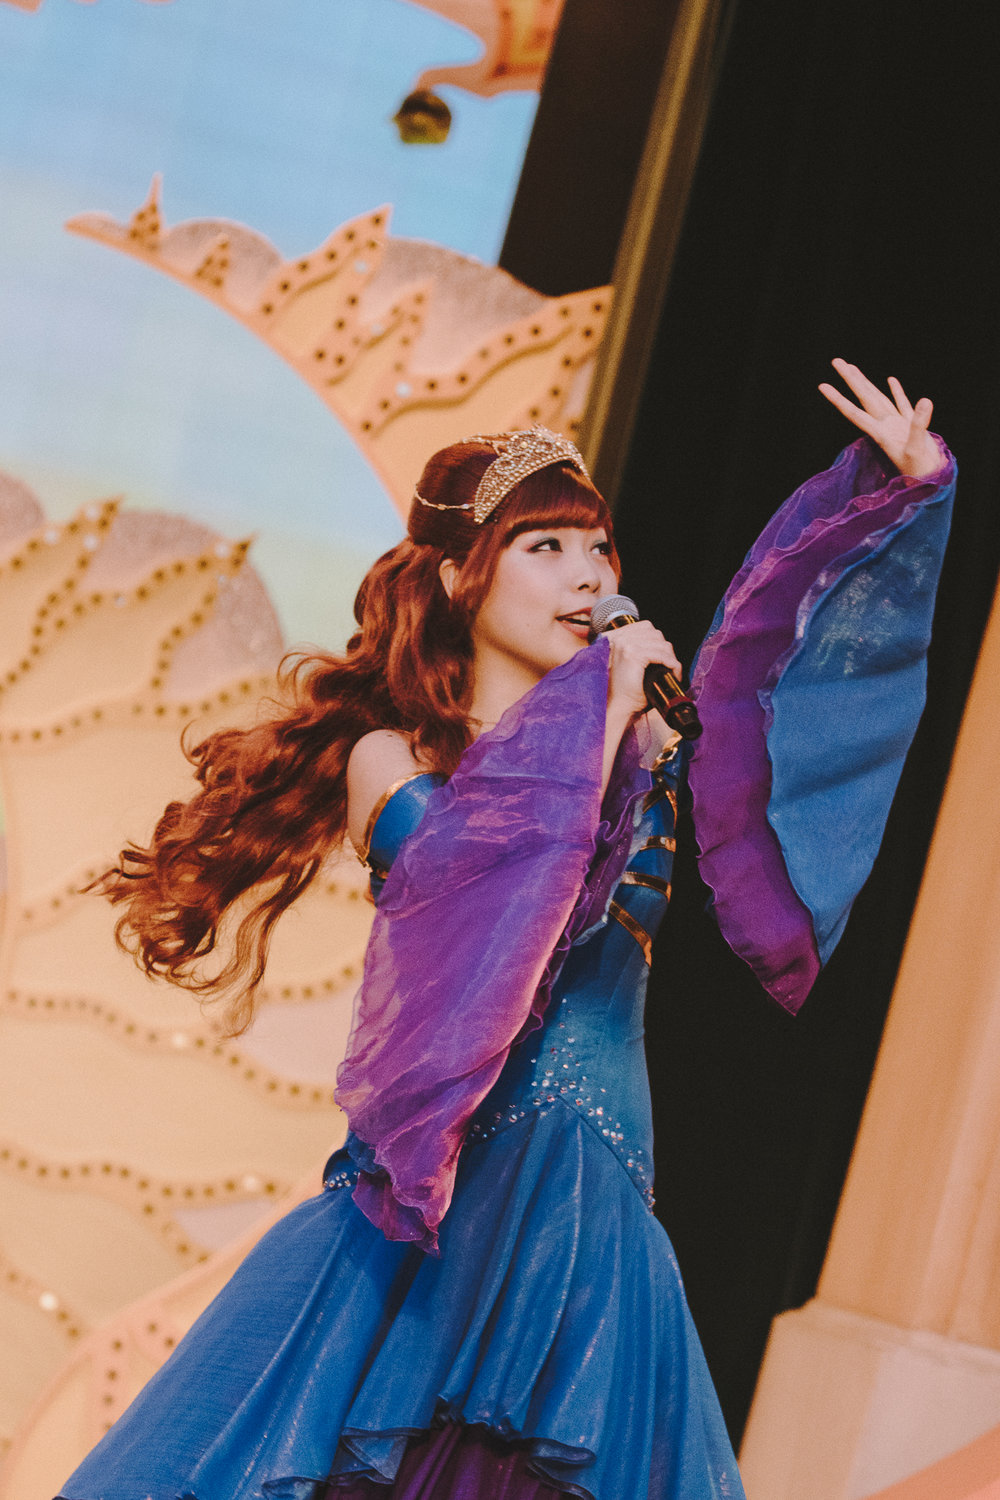 All the songs from Minnie Oh! Minnie originated from Latinx artists and are performed live in Japanese, English, and Spanish.